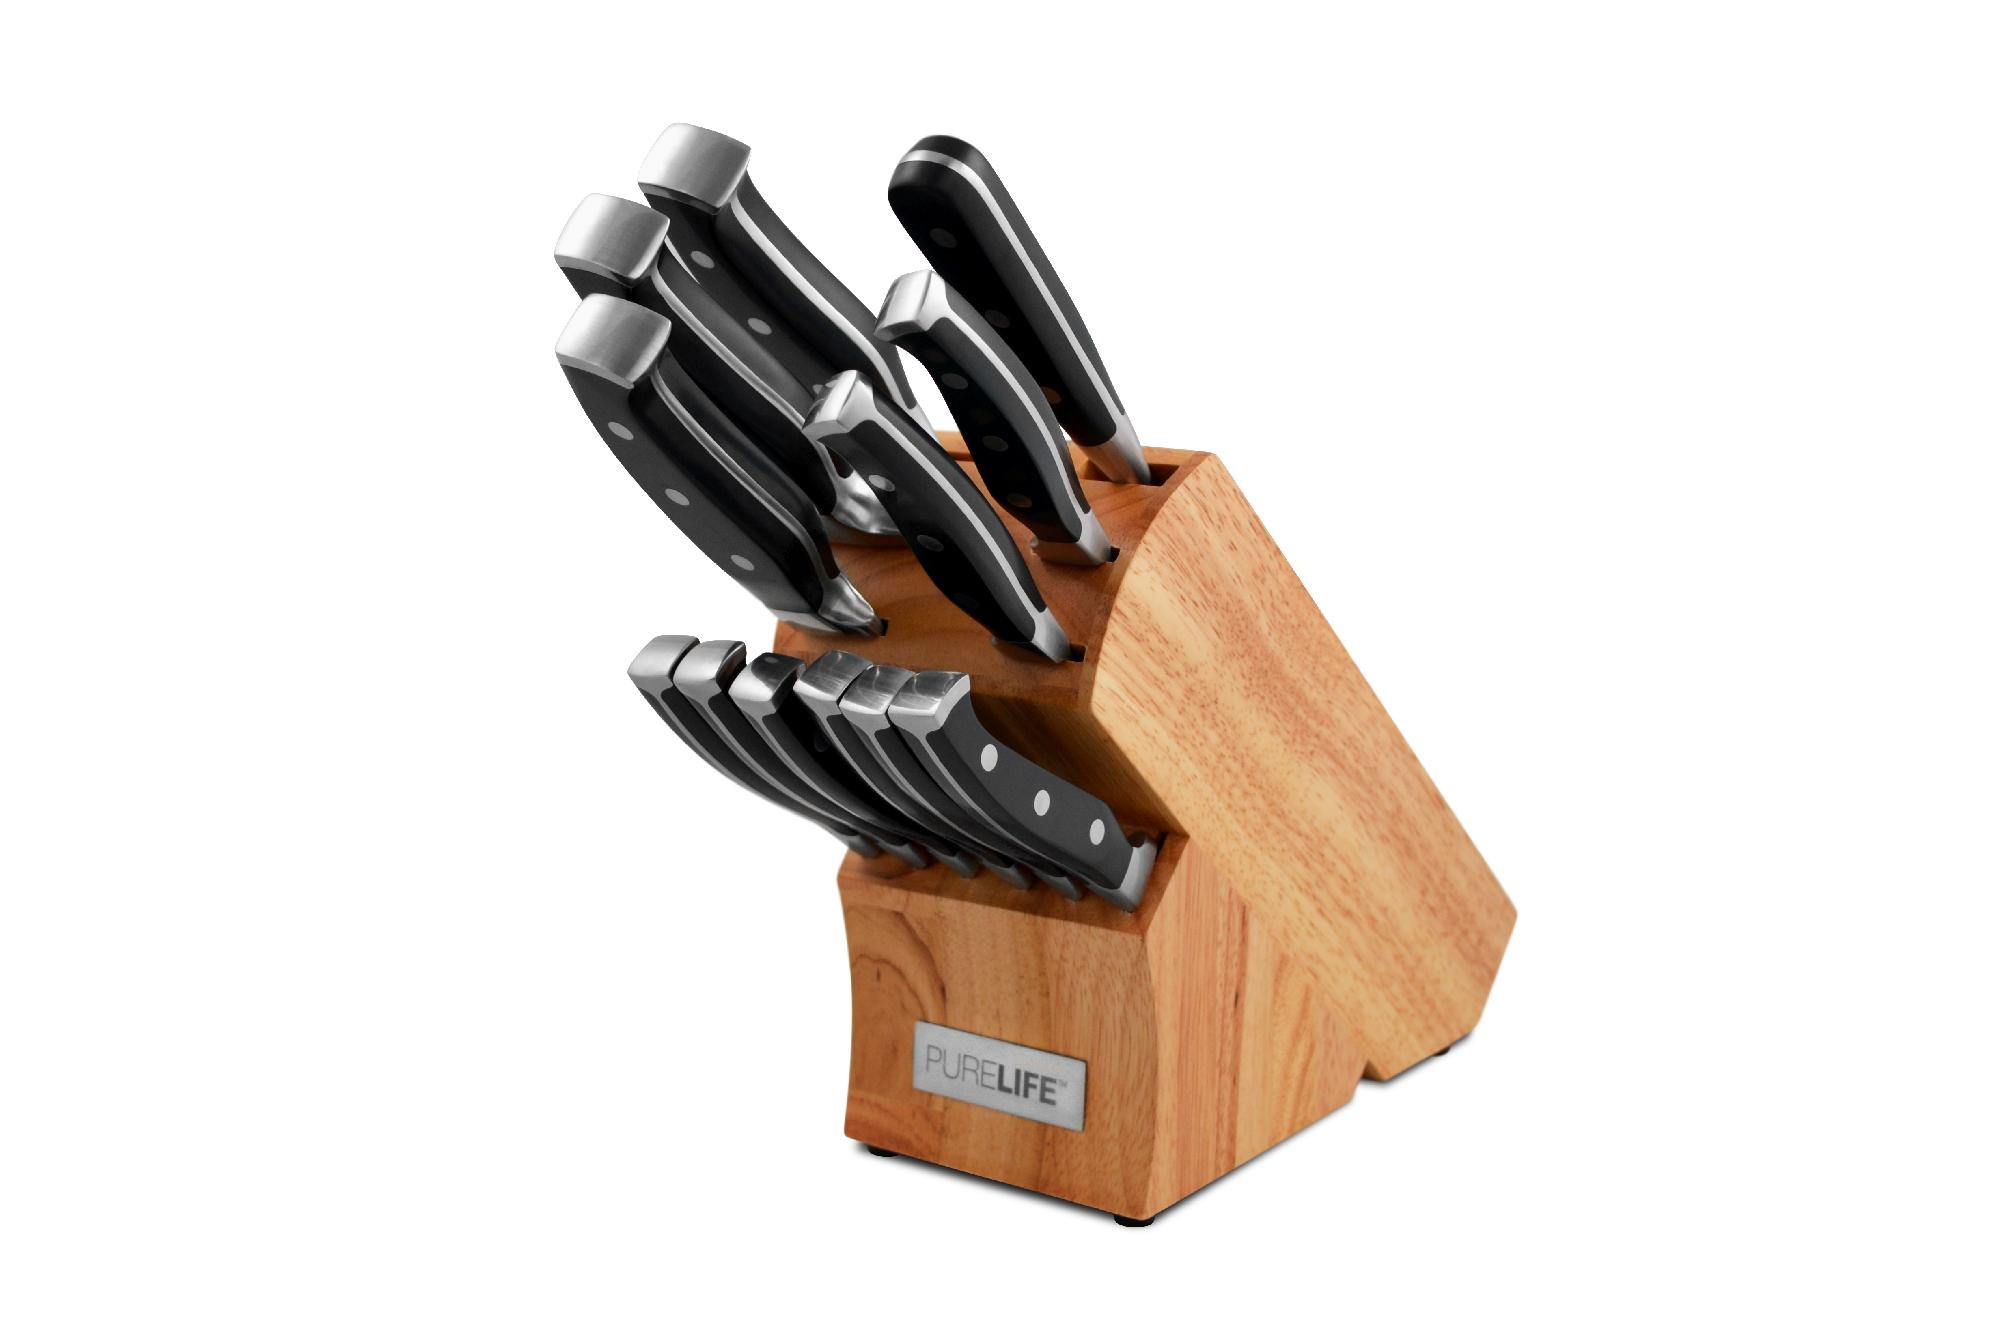 Attractive hampton forge knife set for kitchen with hampton forge cutlery set